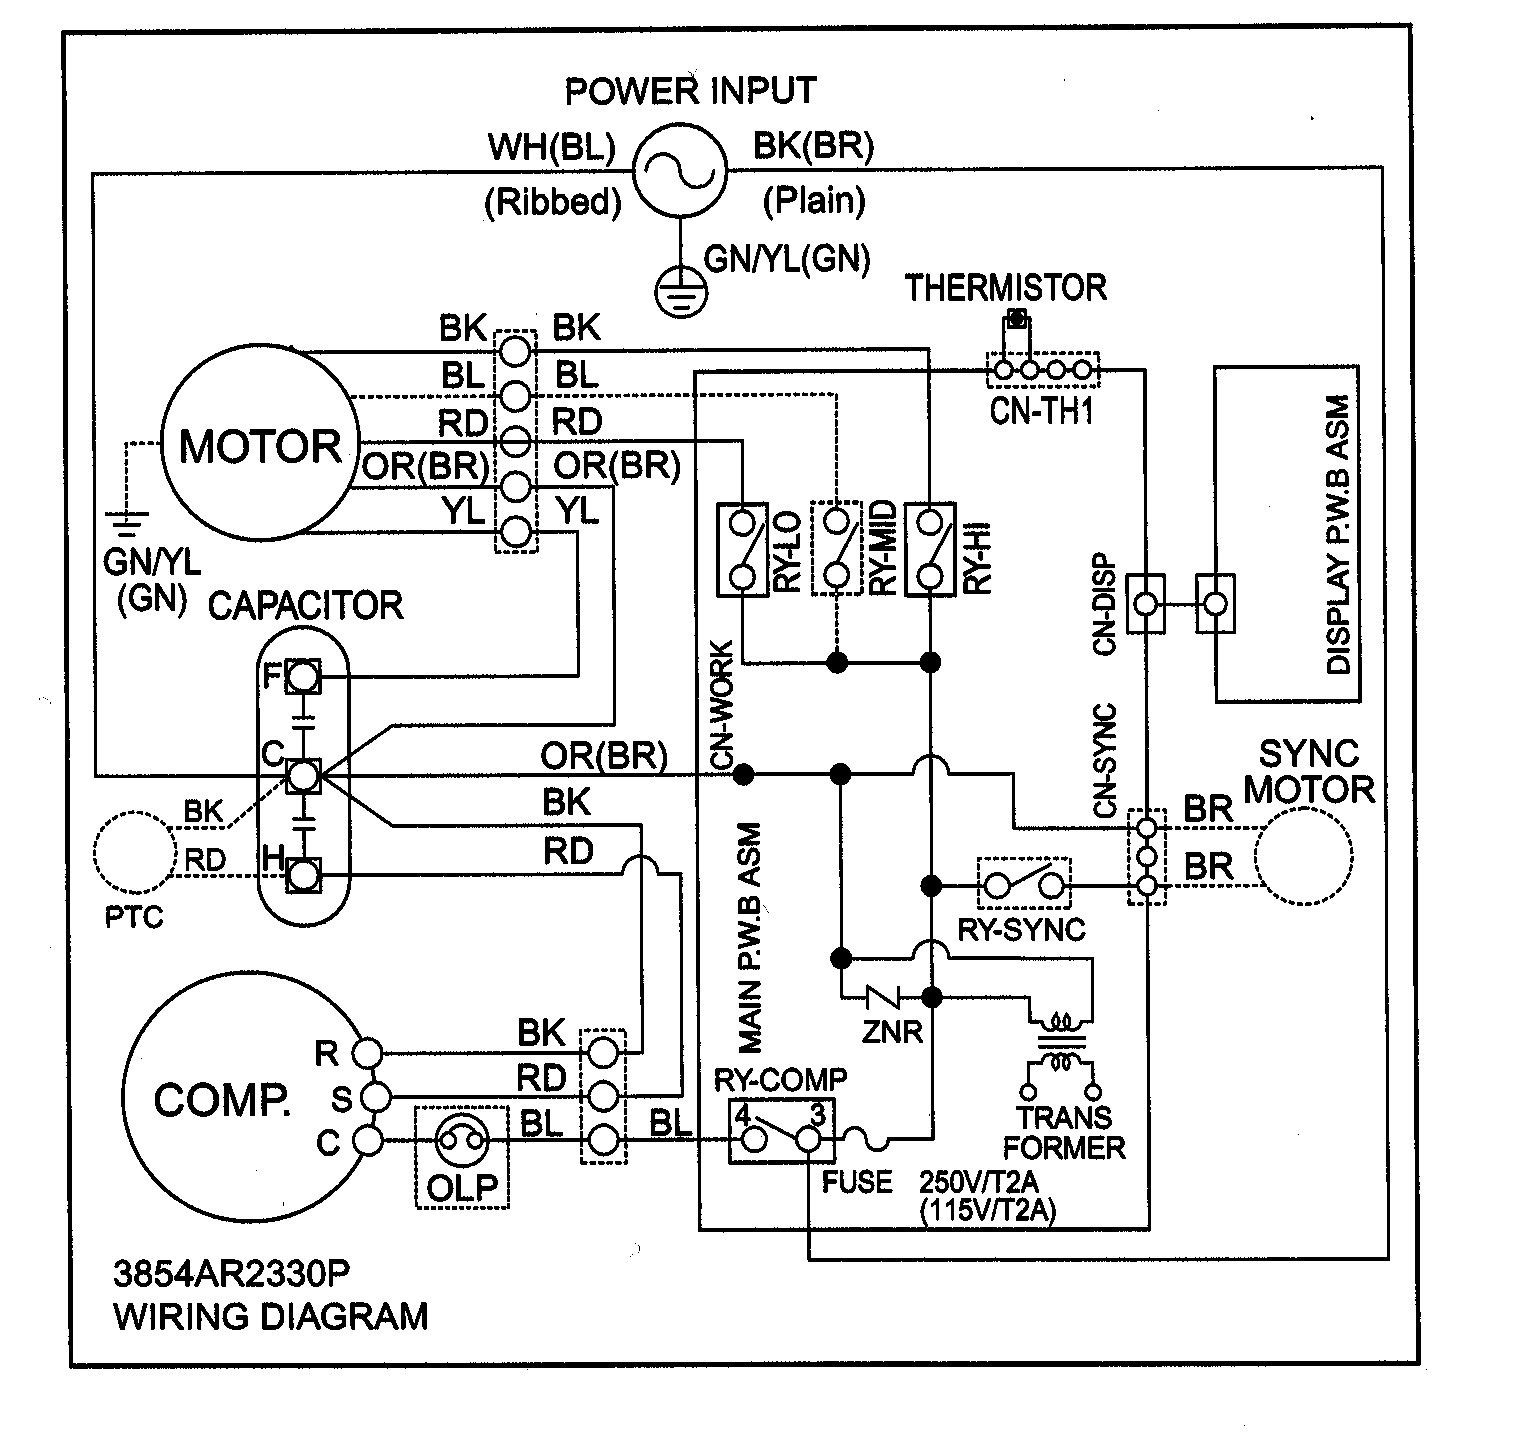 Wiring Diagram For Lg Washing Machine Kiln Heating Elements ... on boat tubing tips, boat trim tips, car wiring tips, boat safety tips, boat operation tips, boat exhaust tips, boat building tips, boat painting tips, boat battery chargers, computer wiring tips,